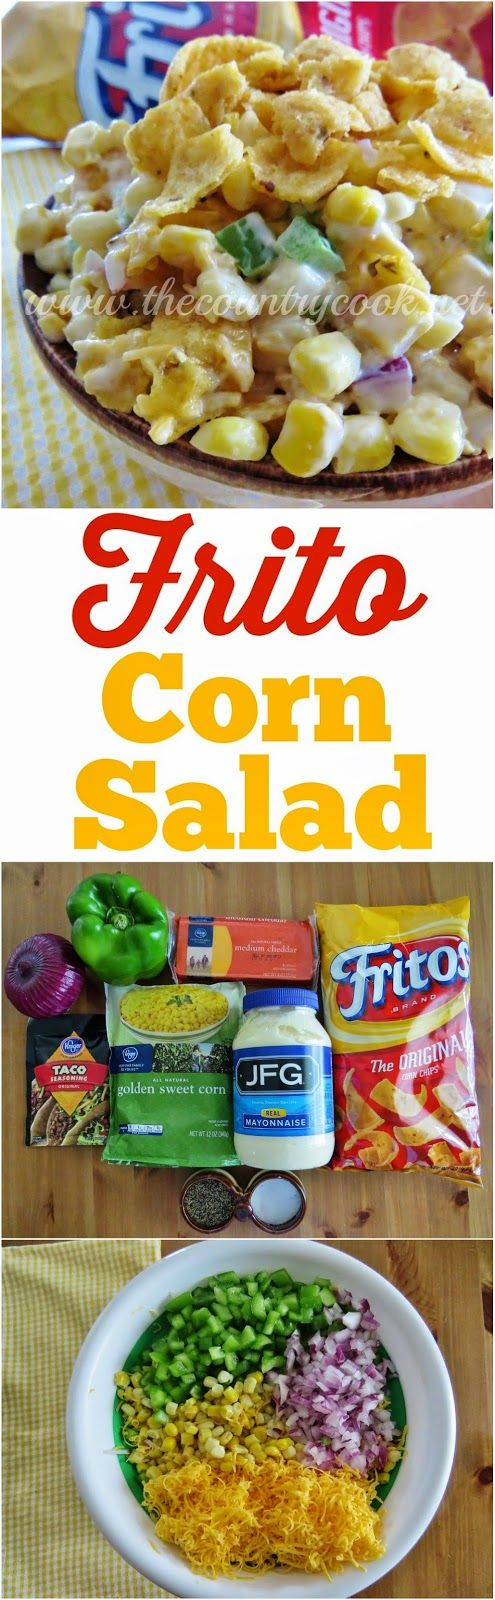 The Country Cook: Frito Corn Salad